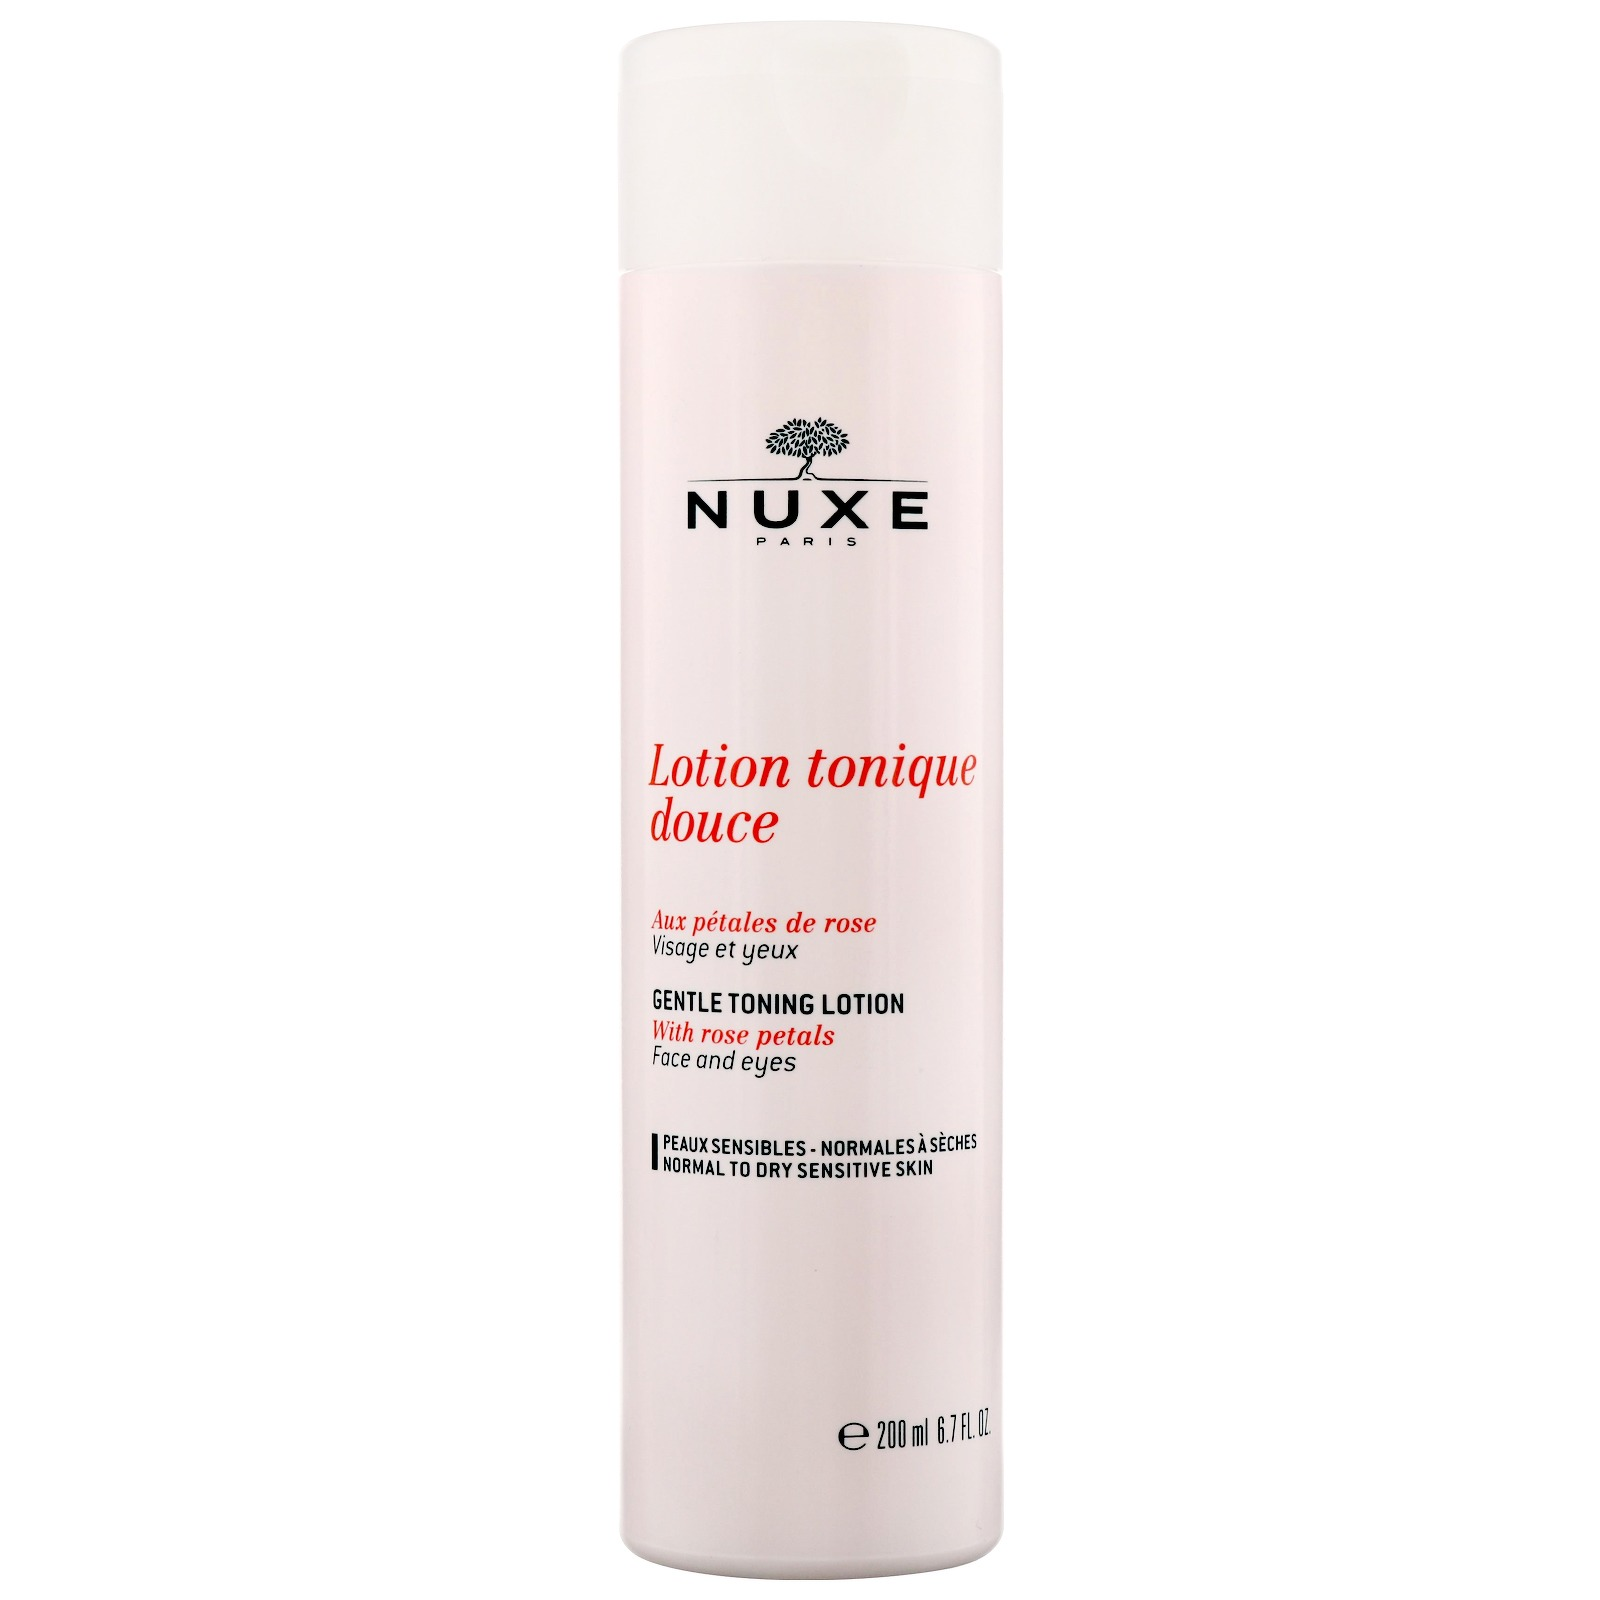 Nuxe Sensitive Skin Gentle Toning Lotion Face and Eyes With Rose Petals 200ml